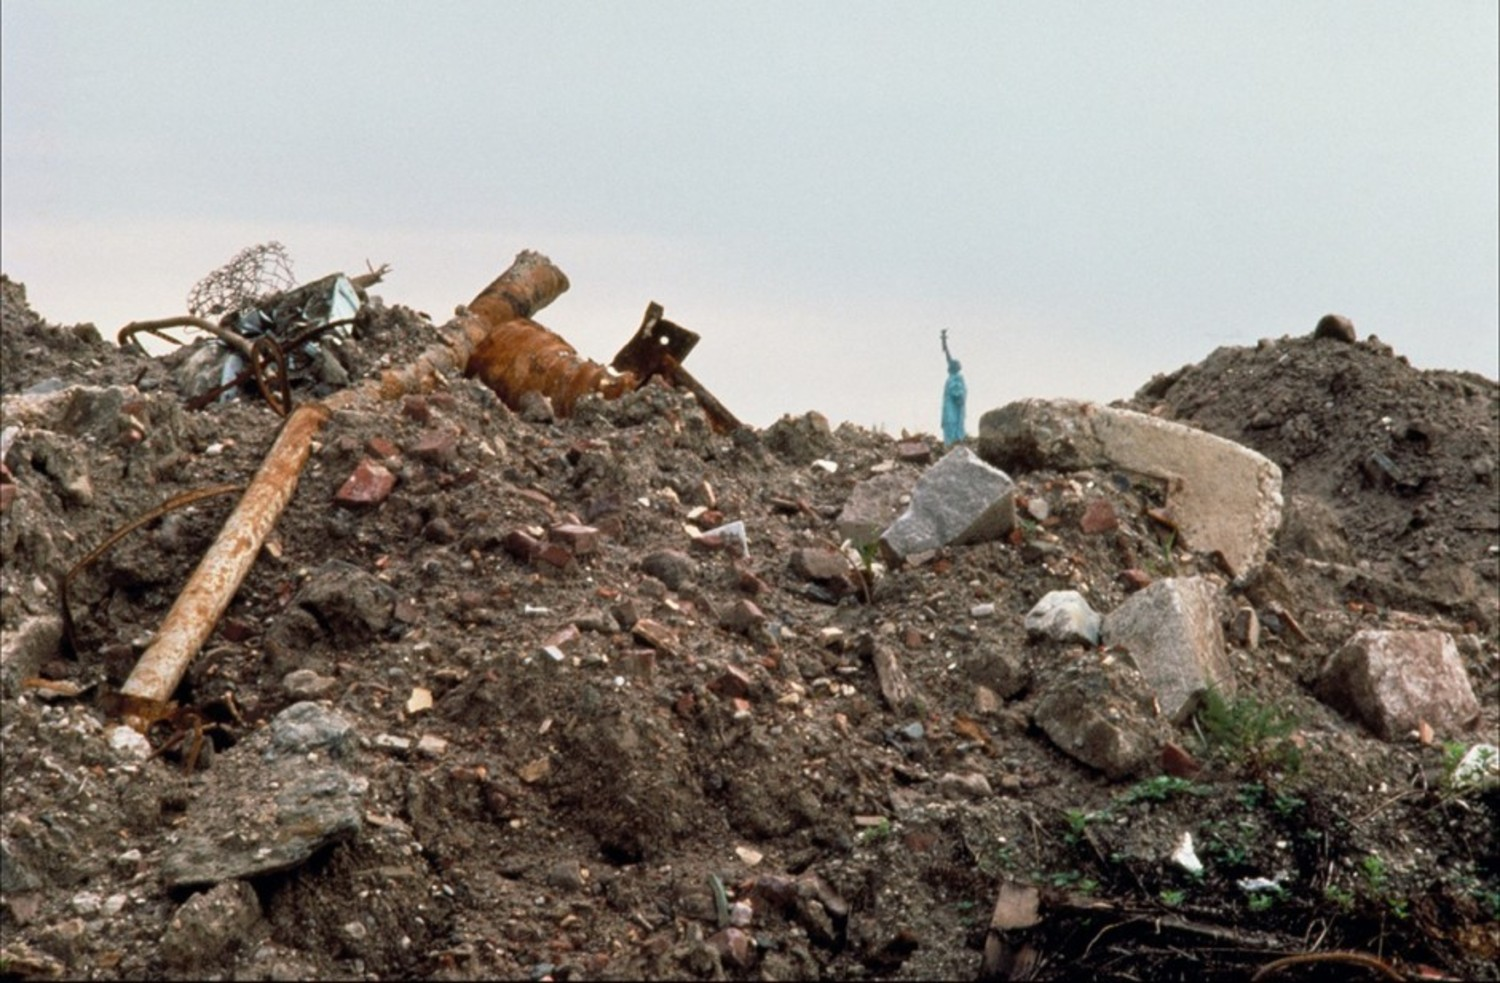 [Battery Park City landfill, Lower Manhattan:] Before planting